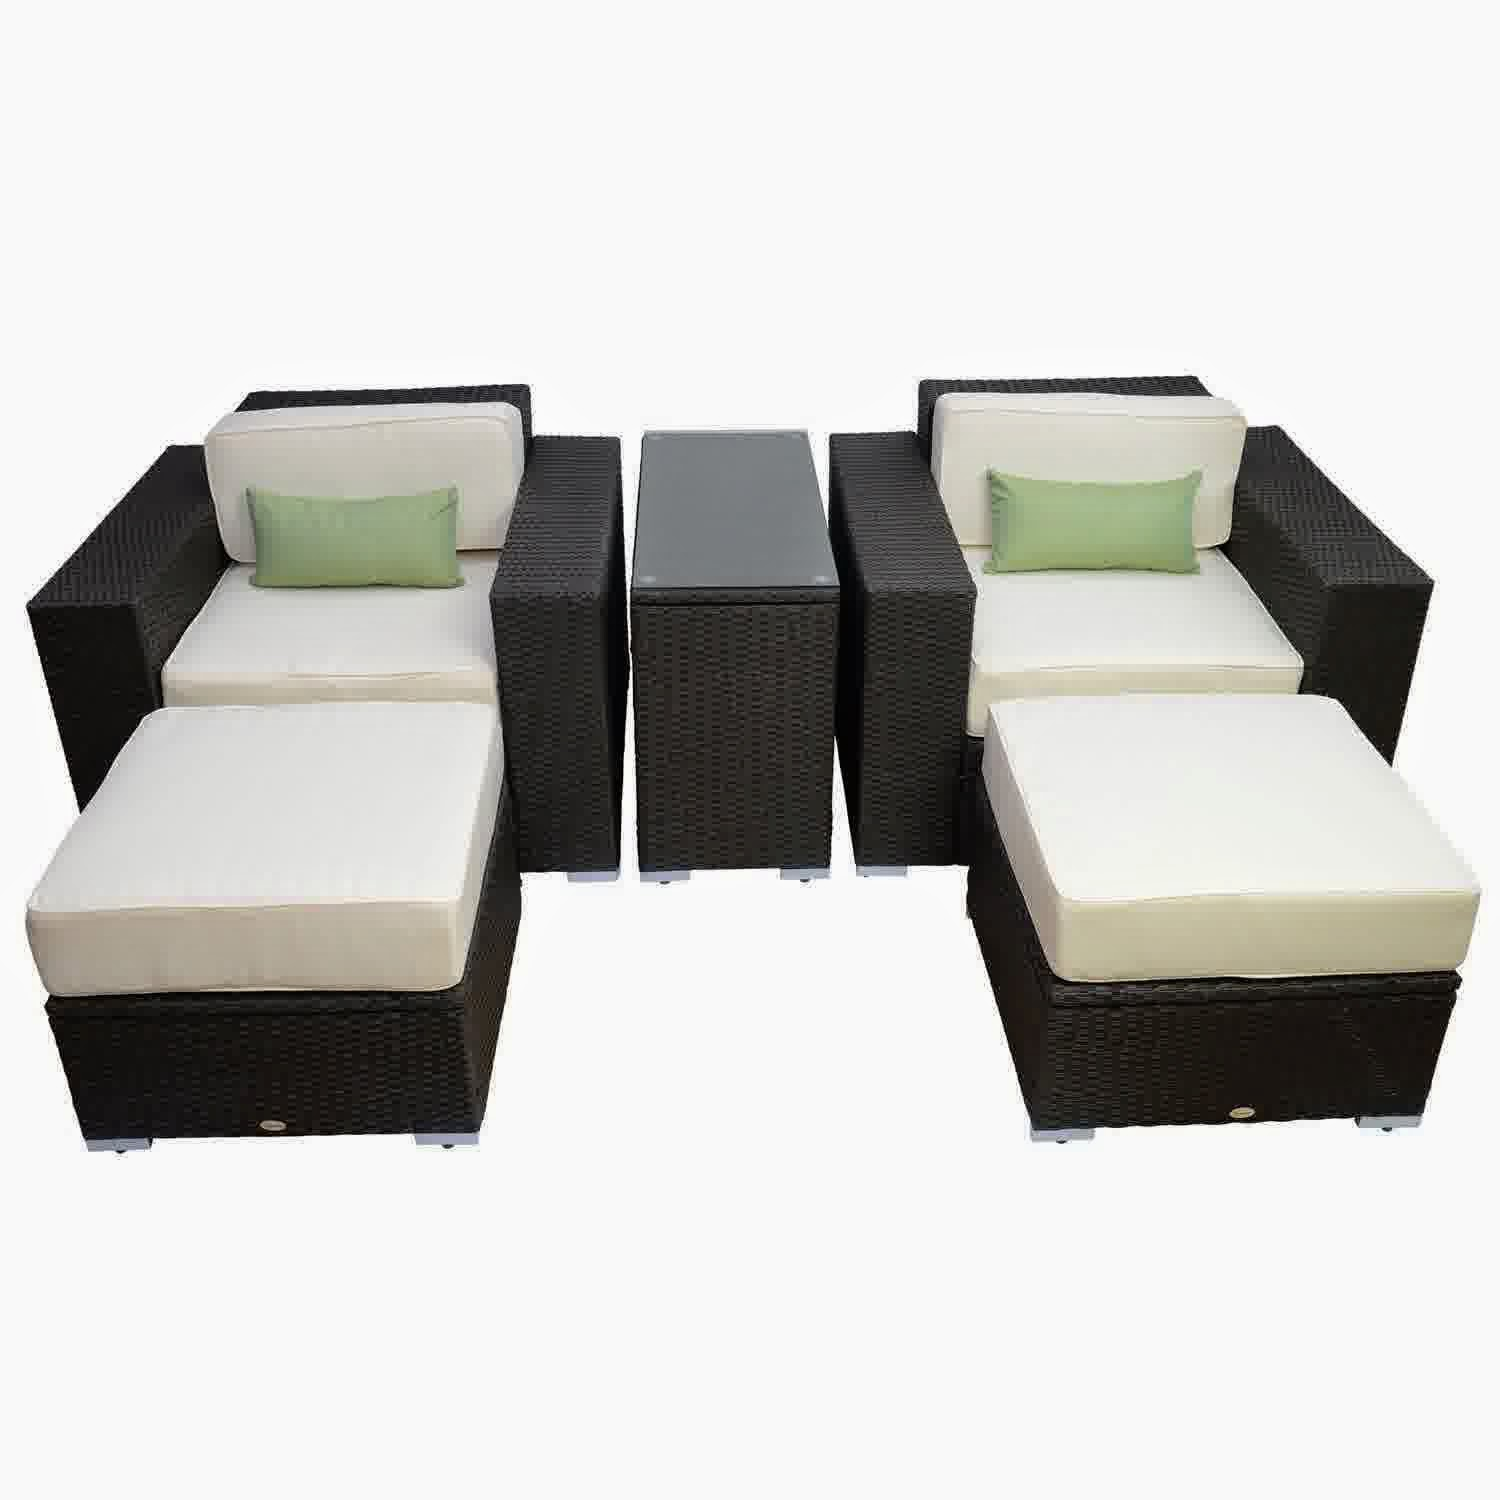 Cheap Sofa Sets Singapore Nubuck Leather Protector Discount Until 60 Outsunny 5pc Outdoor Pe Rattan Wicker